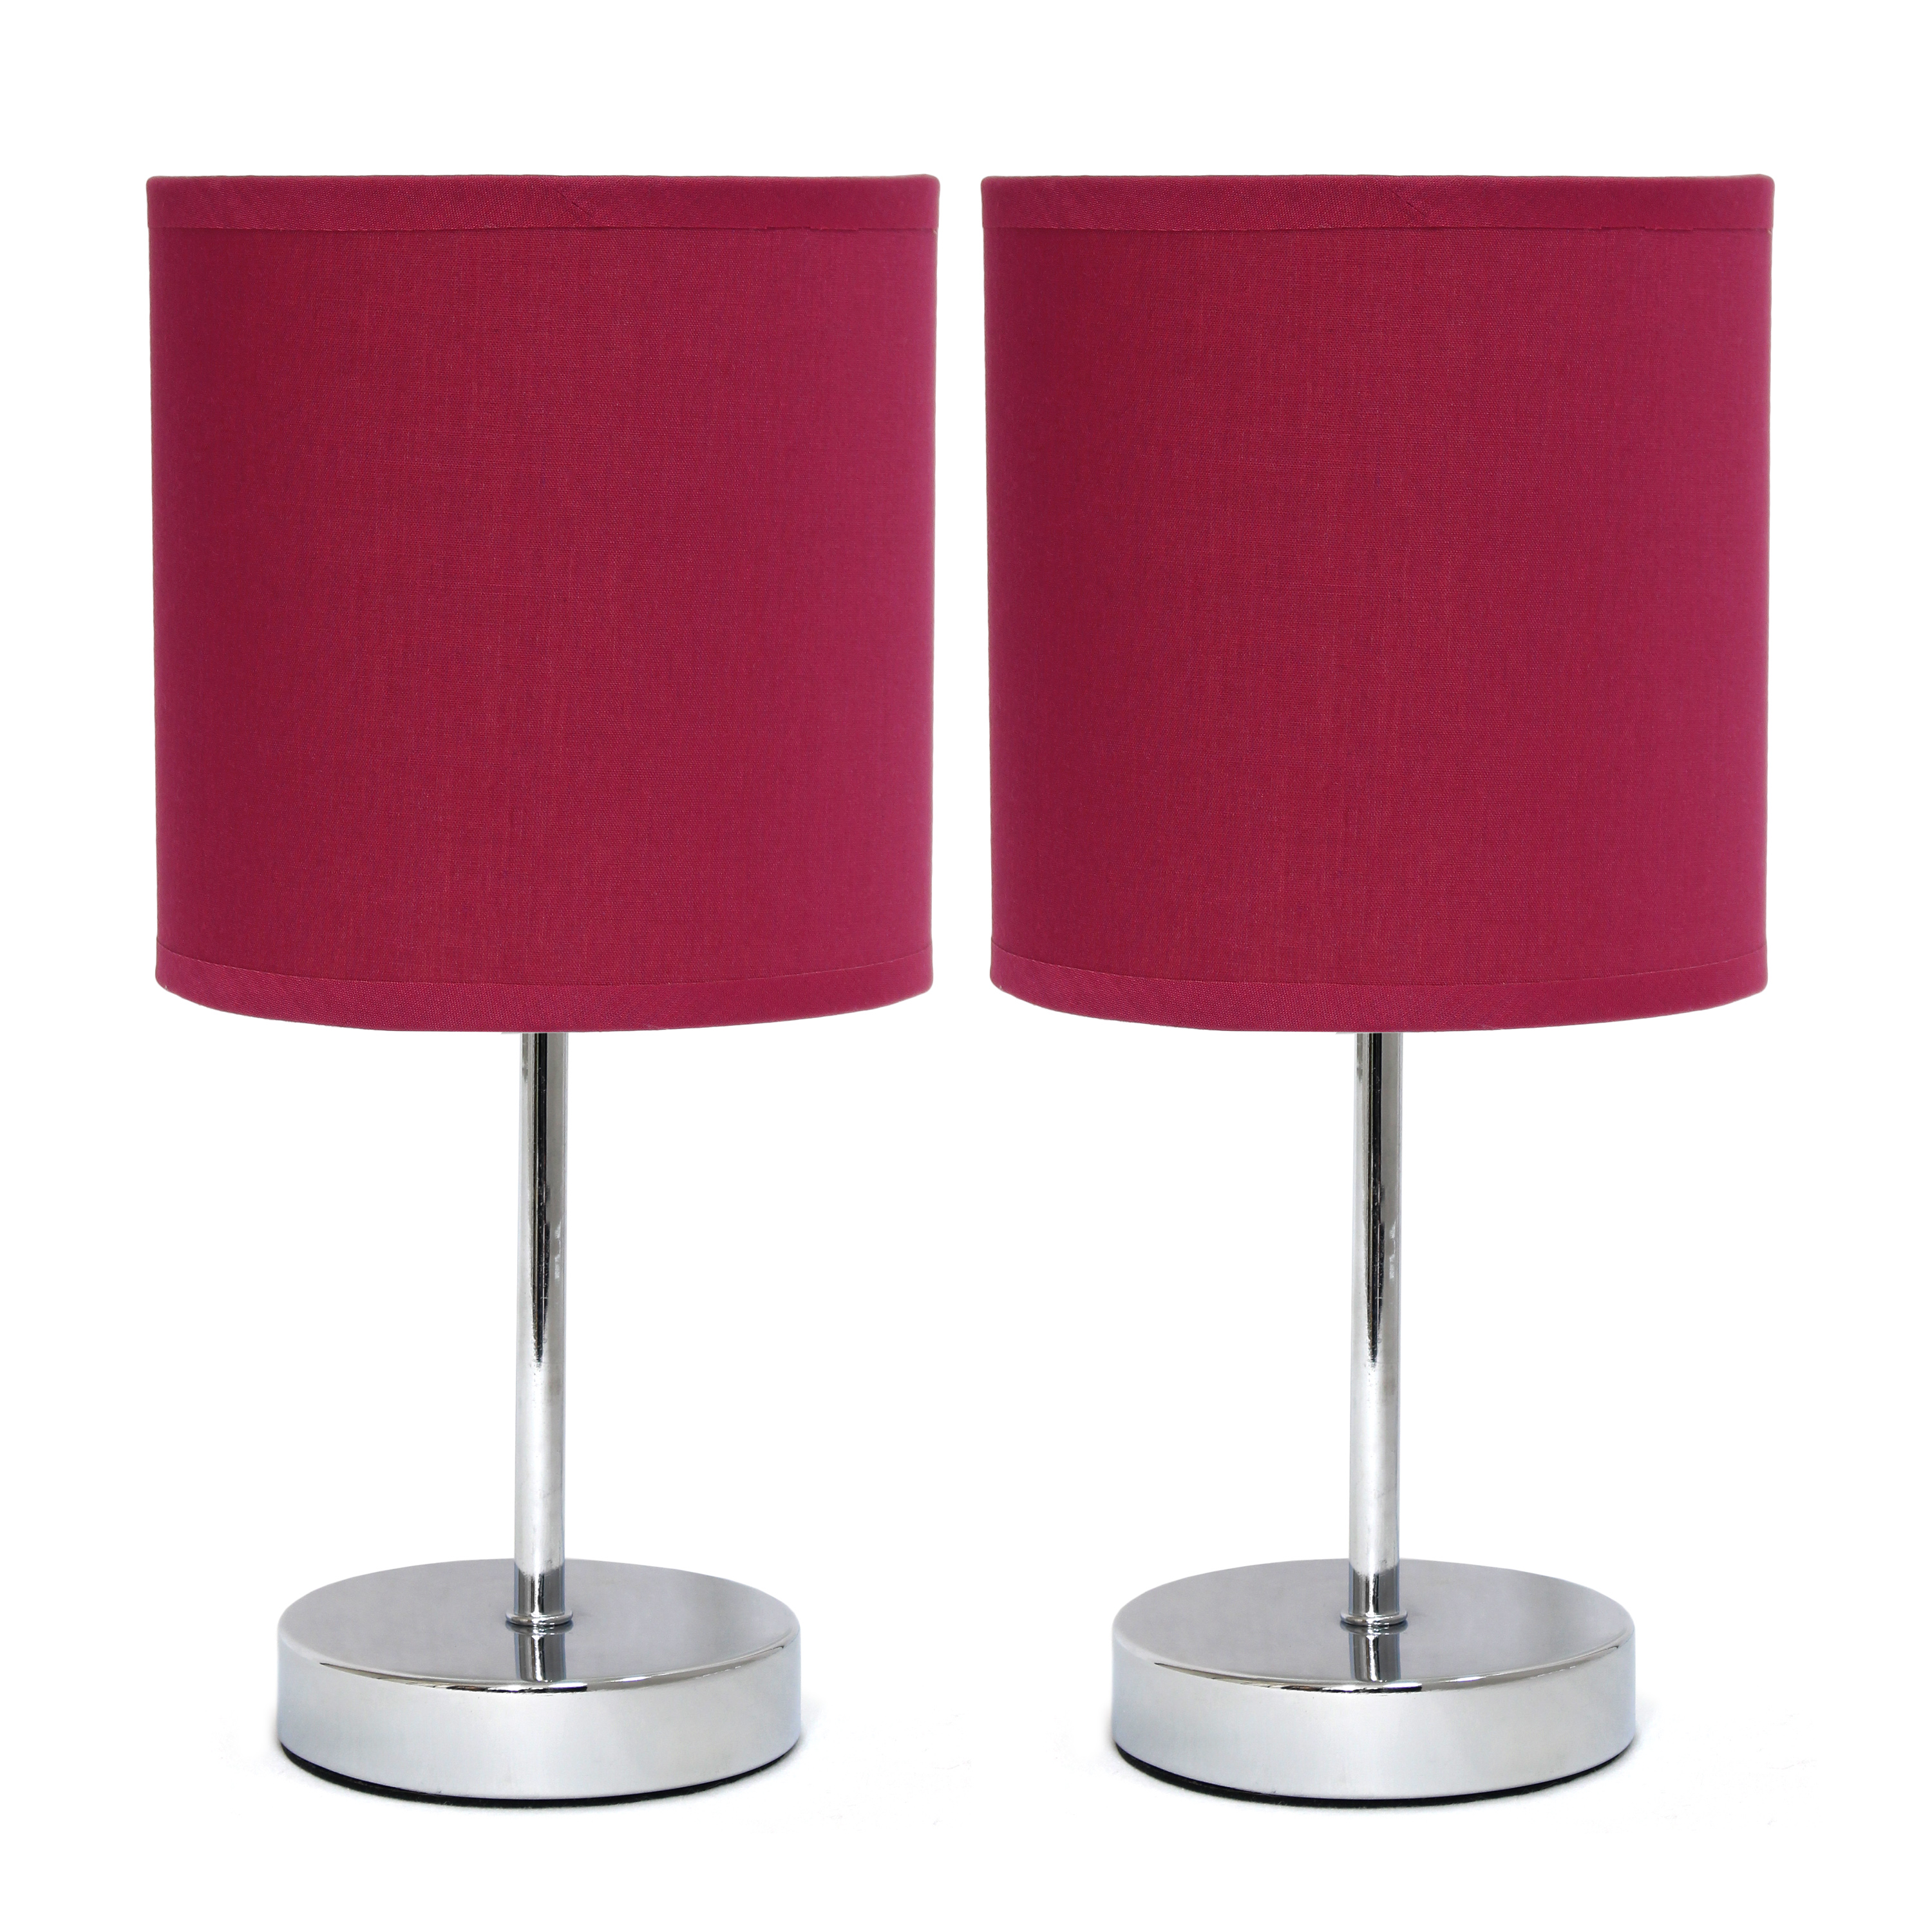 Simple Designs Chrome Mini Basic Table Lamp with Fabric Shade 2 Pack Set, Wine